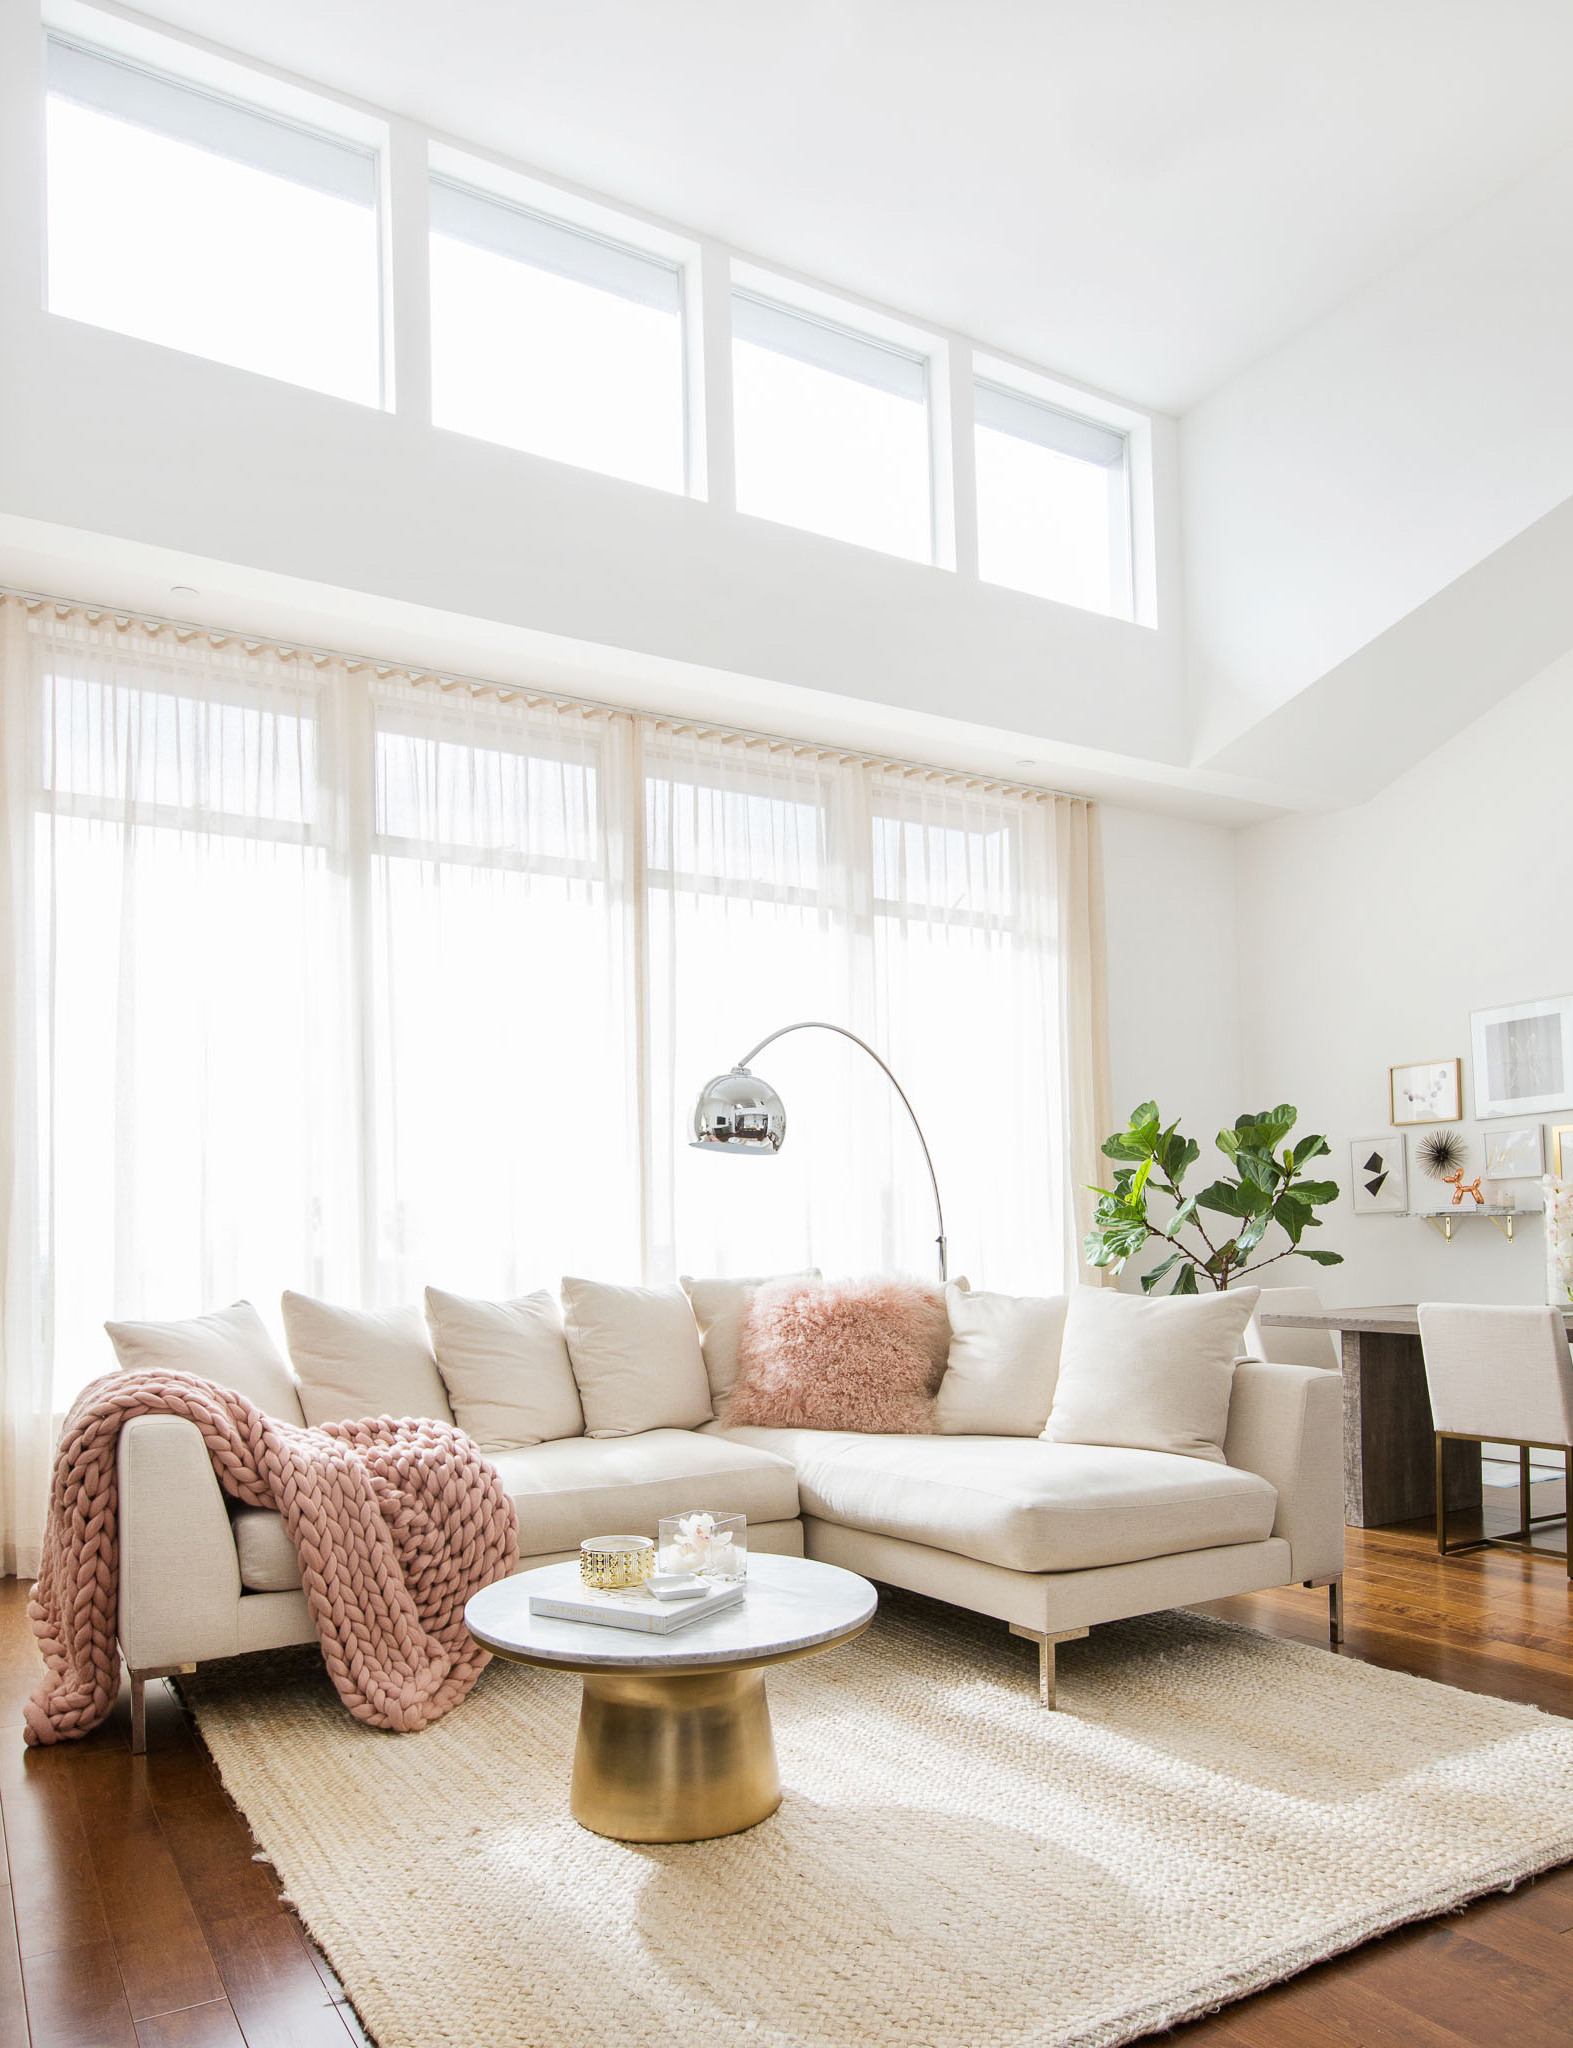 Neutral couch with blush pink throw and pillows with marble table